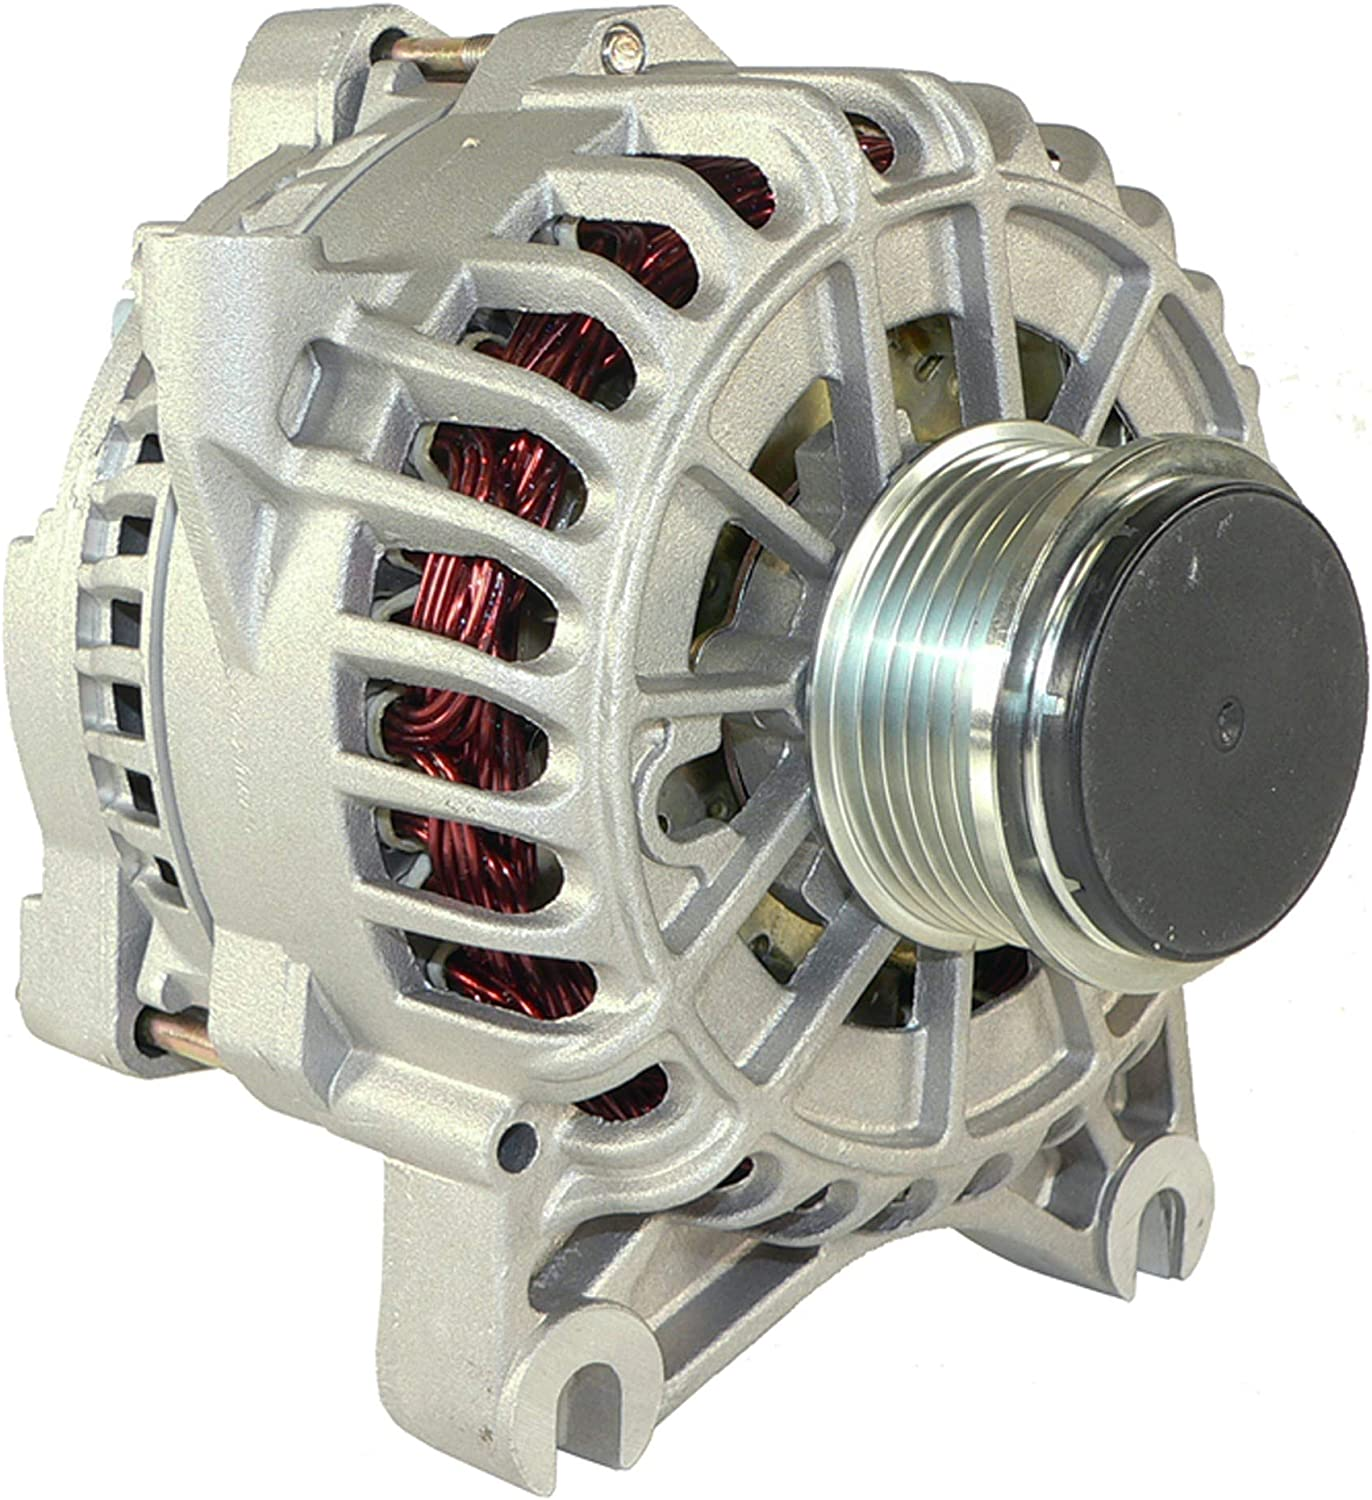 DB Electrical AFD0134 New Alternator For 4.6 4.6L Ford Mustang 05 06 07 08/ 4R3T-10300-BB, 4R3Z-10346-BB, 6R3T-10300-DB, 6R3Z-10346-DA, 7R3T-10300-DA, 7R3Z-10346-B